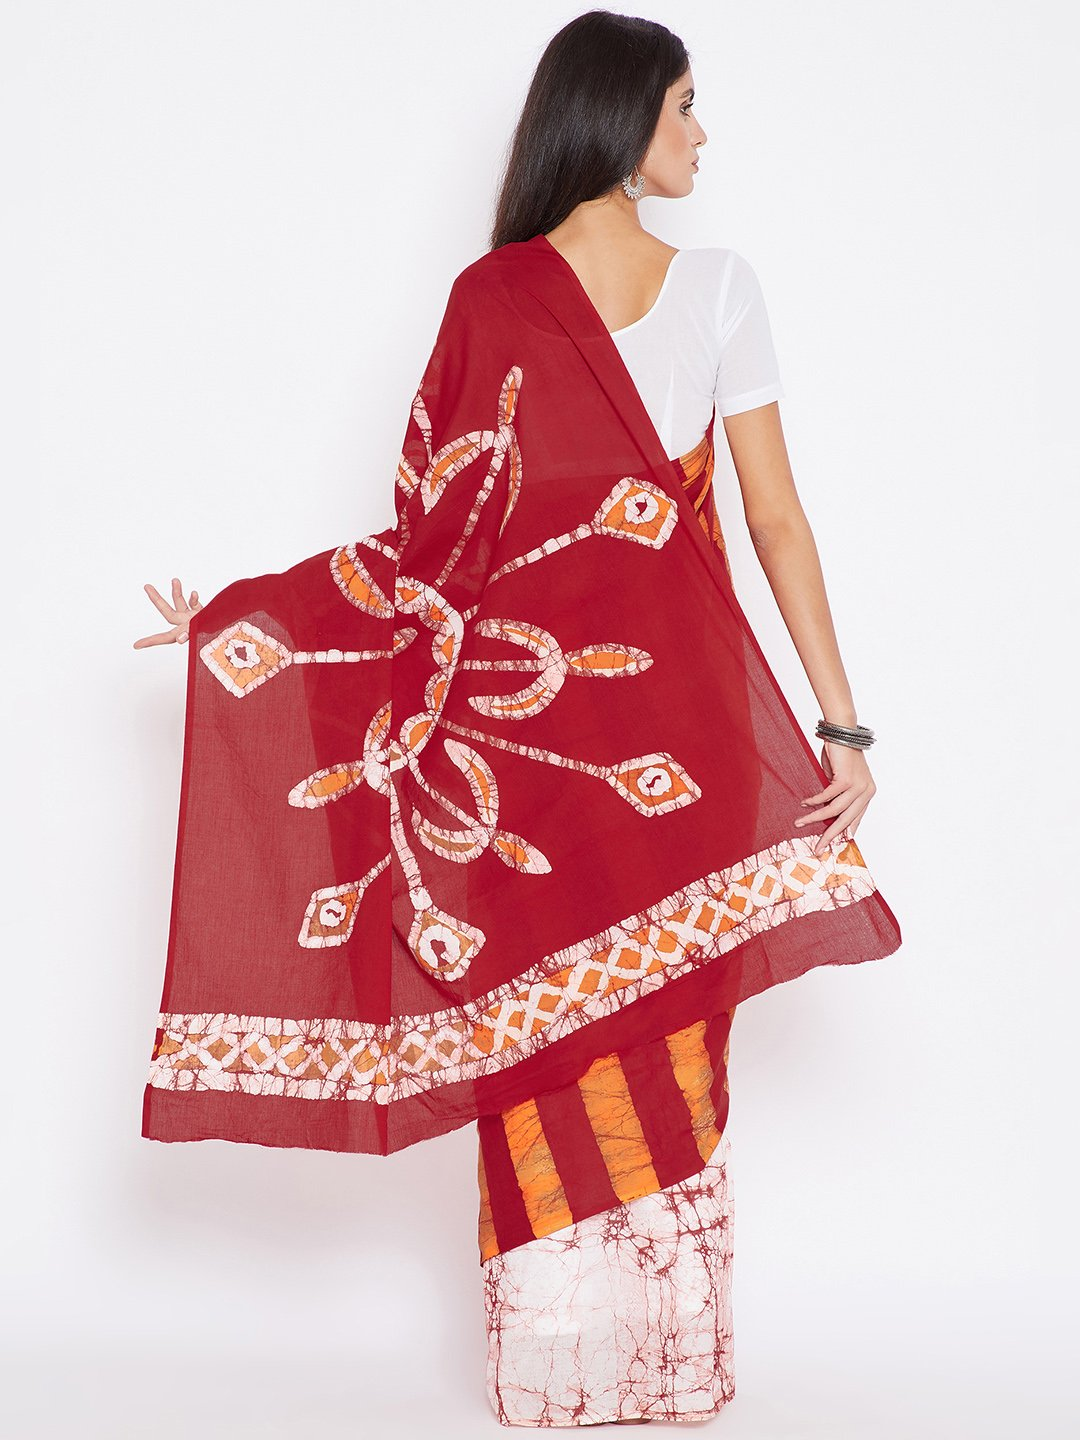 Red & Orange Batik Dyed Handcrafted Cotton Saree-Saree-Kalakari India-BHKPSA0014-Batik, Cotton, Geographical Indication, Hand Blocks, Hand Crafted, Heritage Prints, Sarees, Sustainable Fabrics-[Linen,Ethnic,wear,Fashionista,Handloom,Handicraft,Indigo,blockprint,block,print,Cotton,Chanderi,Blue, latest,classy,party,bollywood,trendy,summer,style,traditional,formal,elegant,unique,style,hand,block,print, dabu,booti,gift,present,glamorous,affordable,collectible,Sari,Saree,printed, holi, Diwali, birth